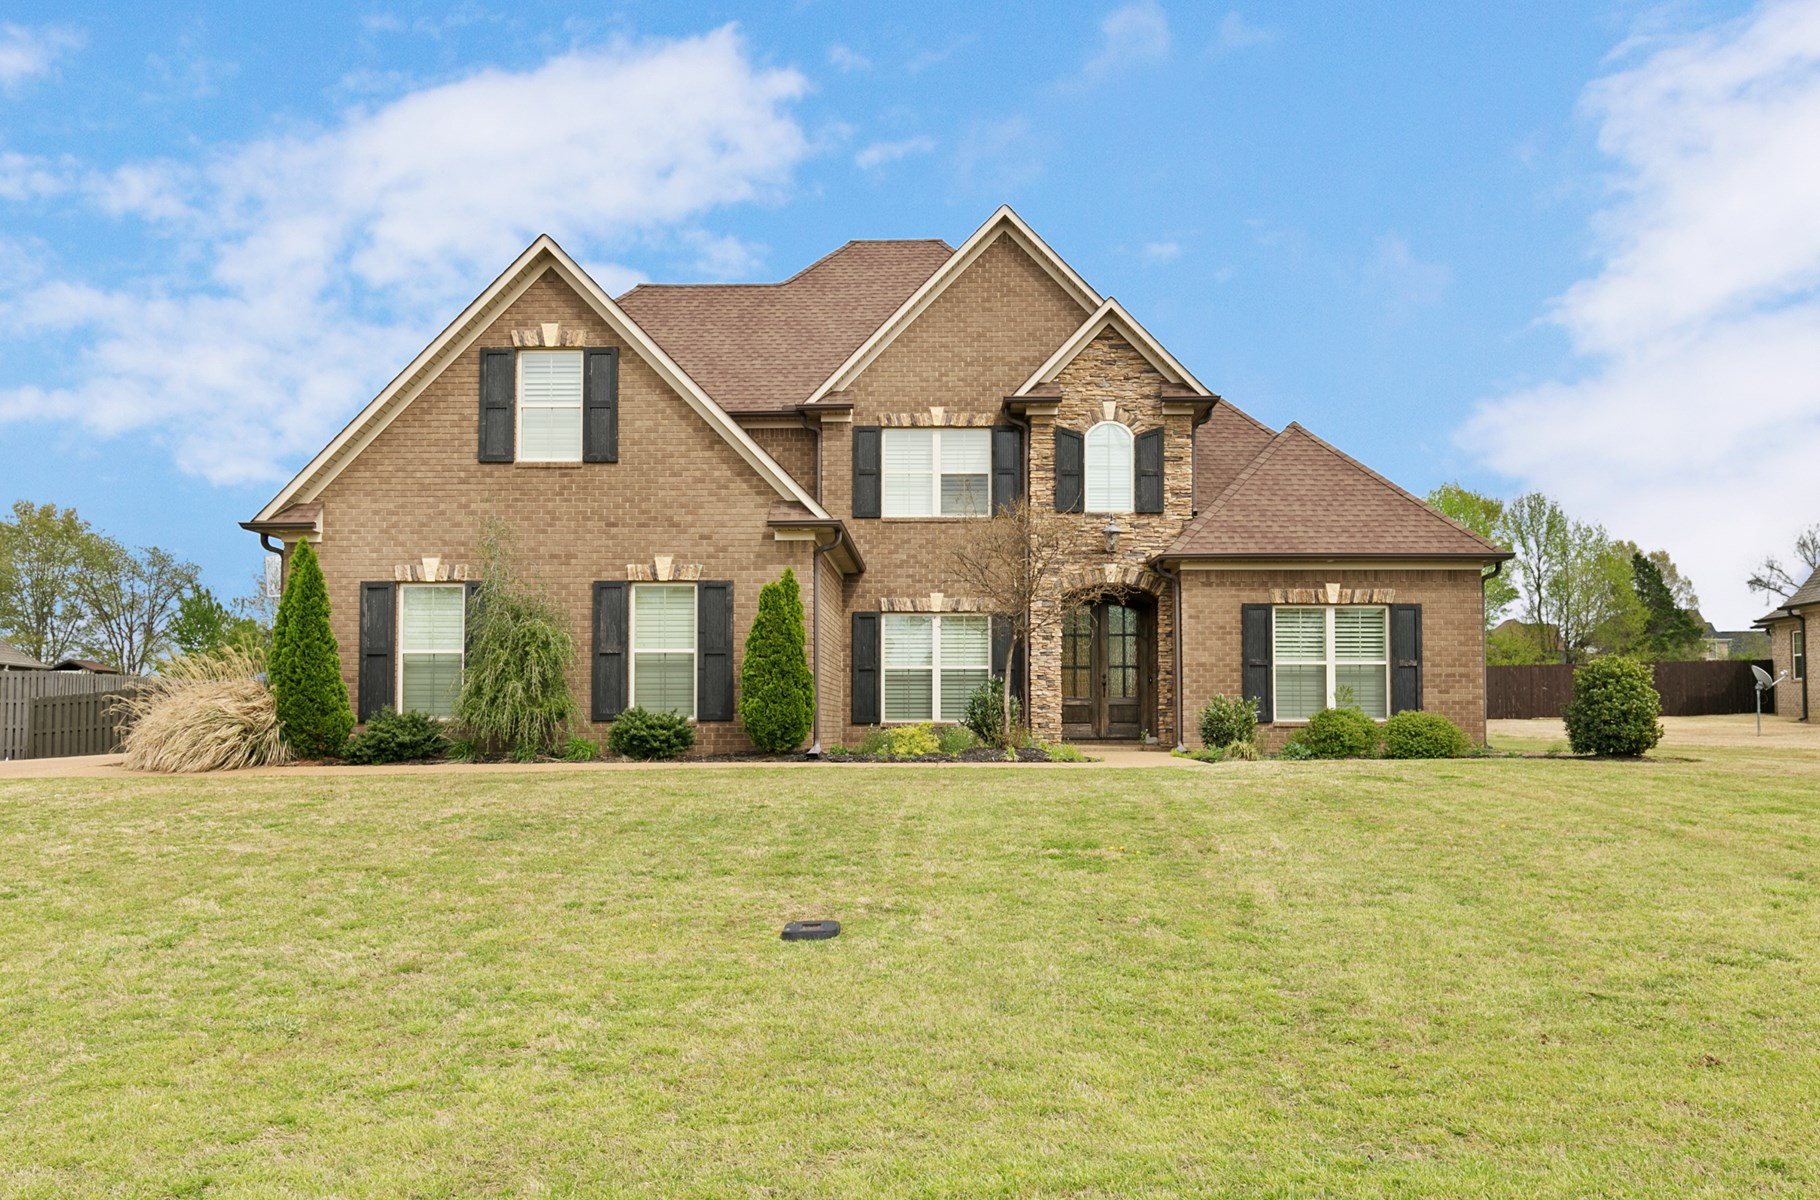 Home For Sale in Hale Estates - In-Ground Pool - 1 ACRE Lot